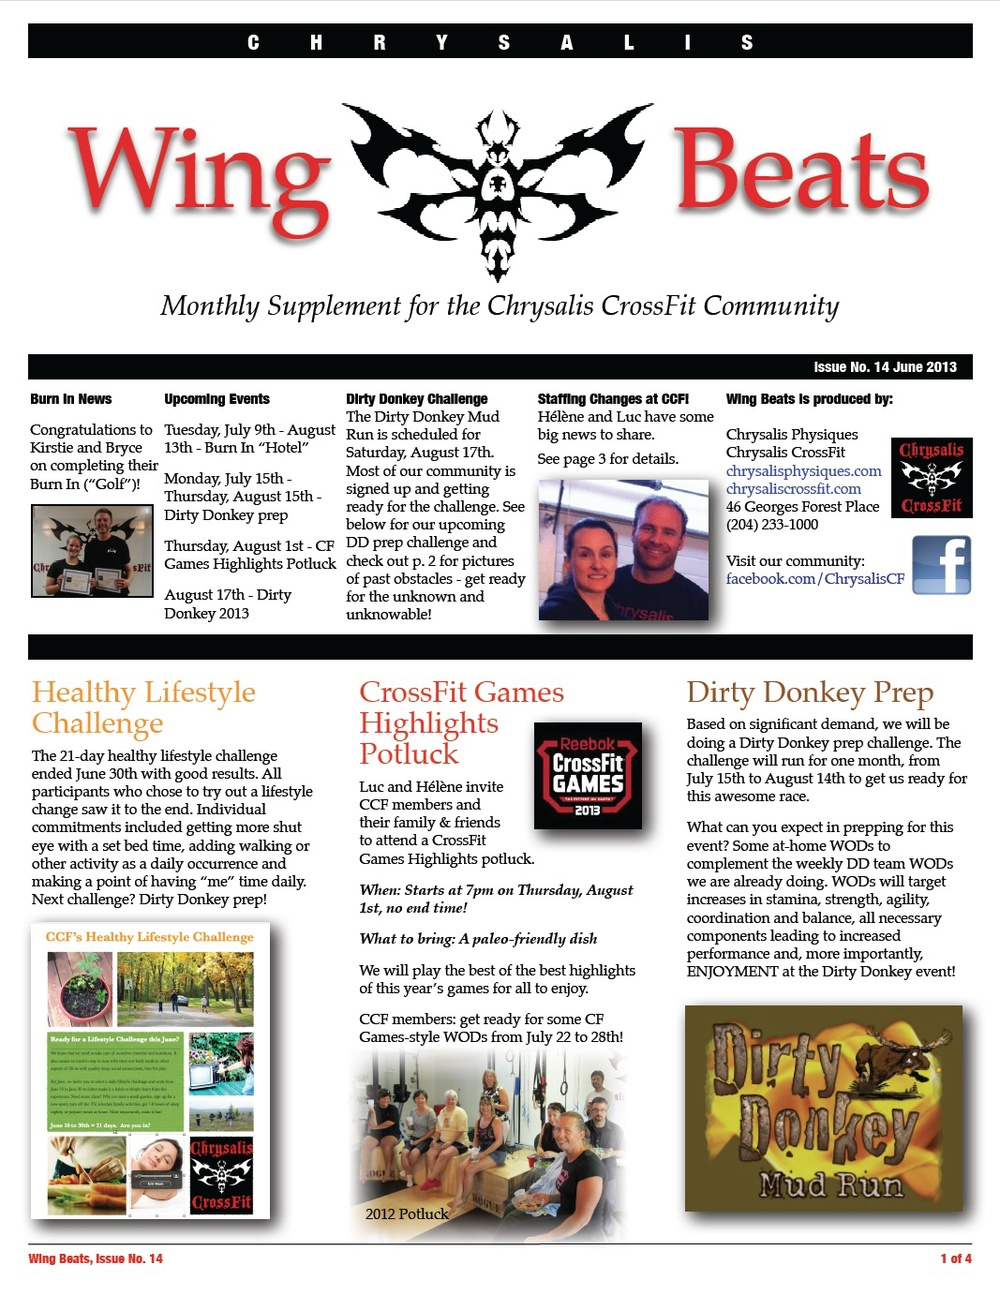 WingBeats Issue #14 - June 2013